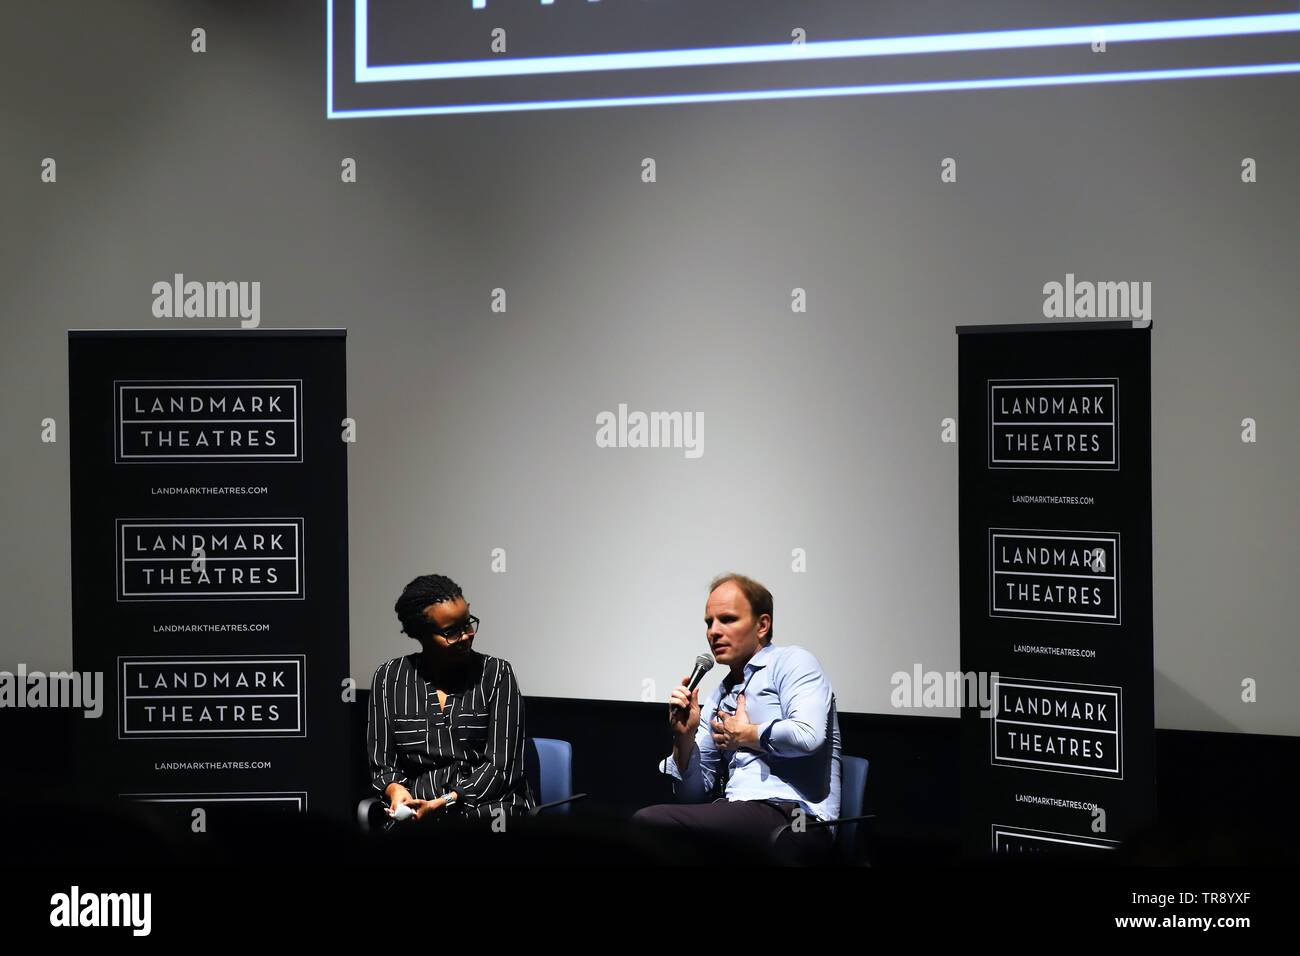 LOS ANGELES - May 10: Finnish director Dome Karukoski (pictured right) answers questions about the biopic 'Tolkien' at The Landmark. - Stock Image